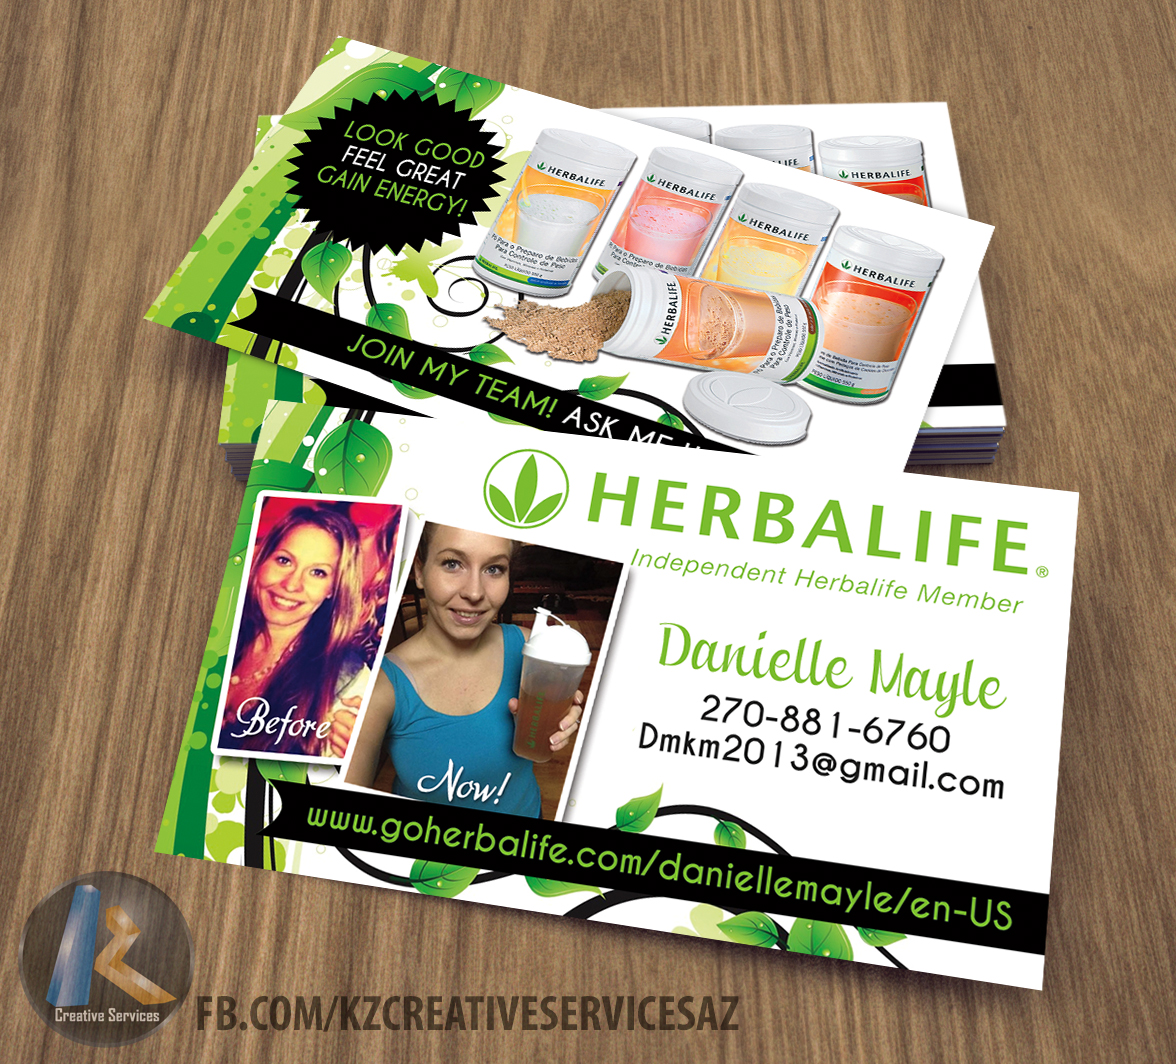 Herbalife Business Cards style 2 · KZ Creative Services · Online ...